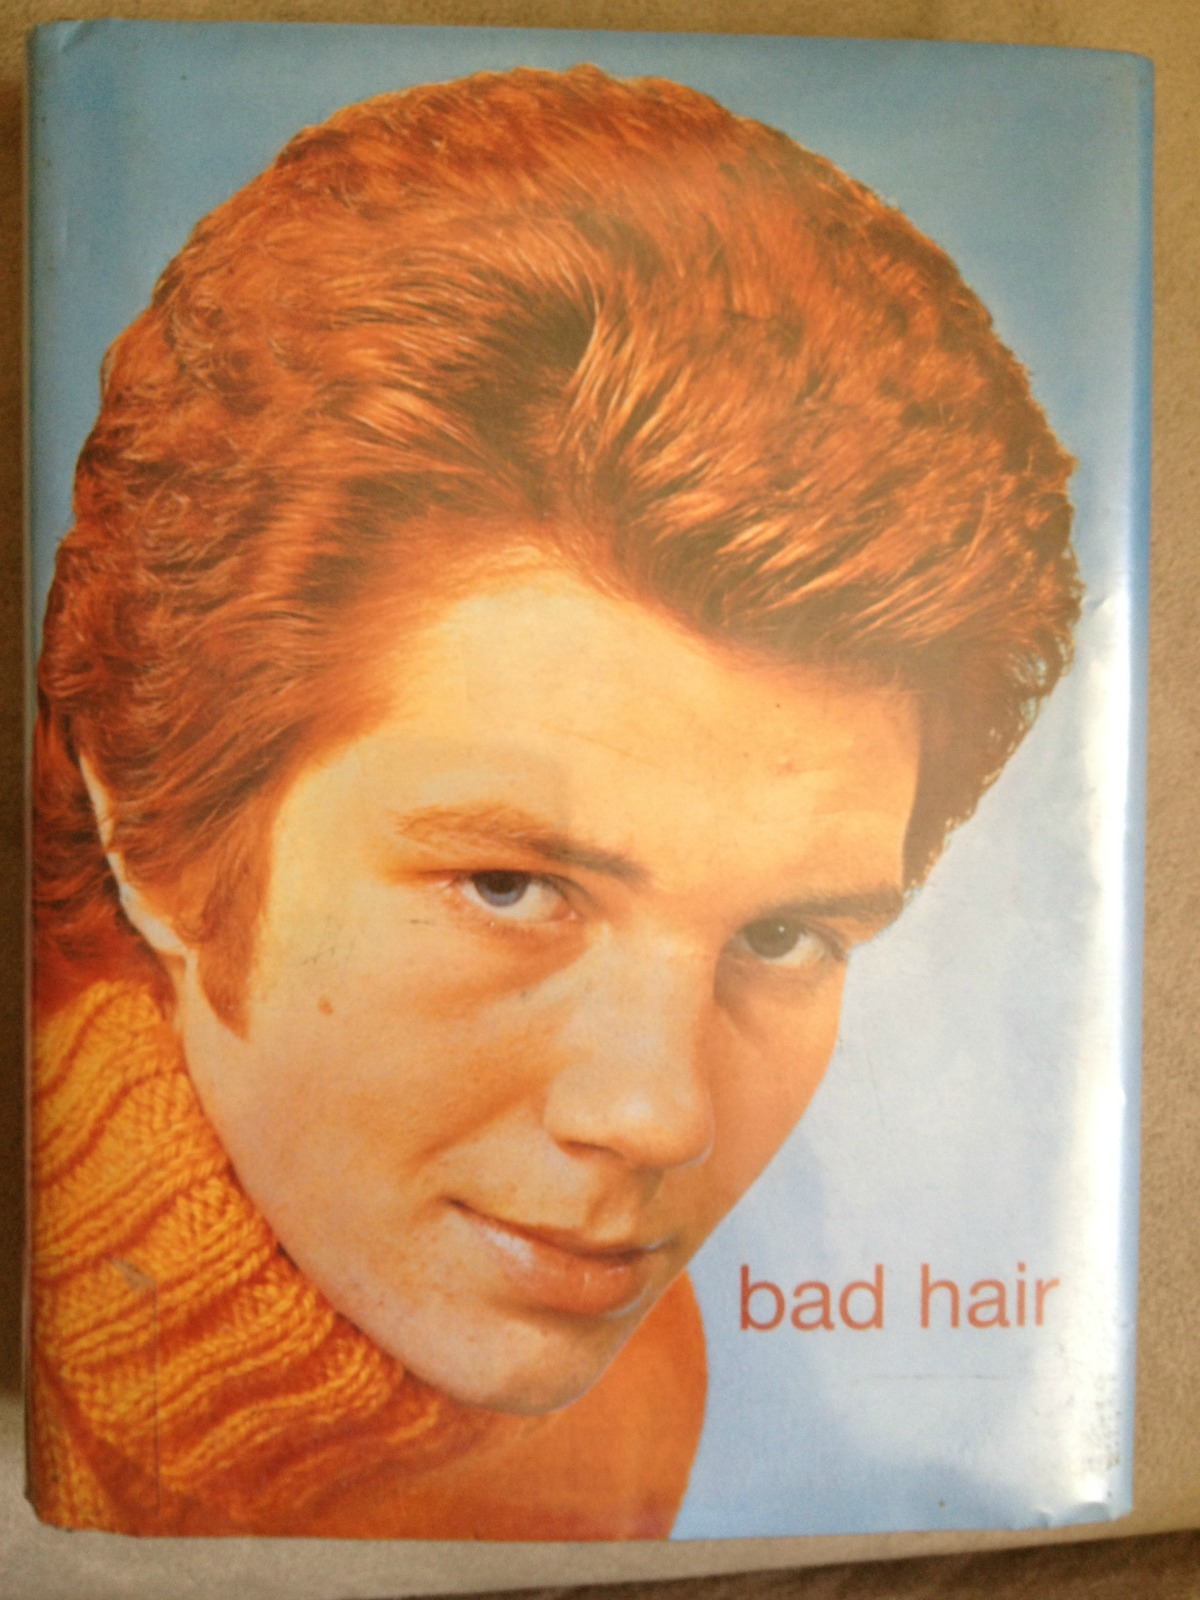 Bad Hair by James Innes-Smith and Henrietta Webb